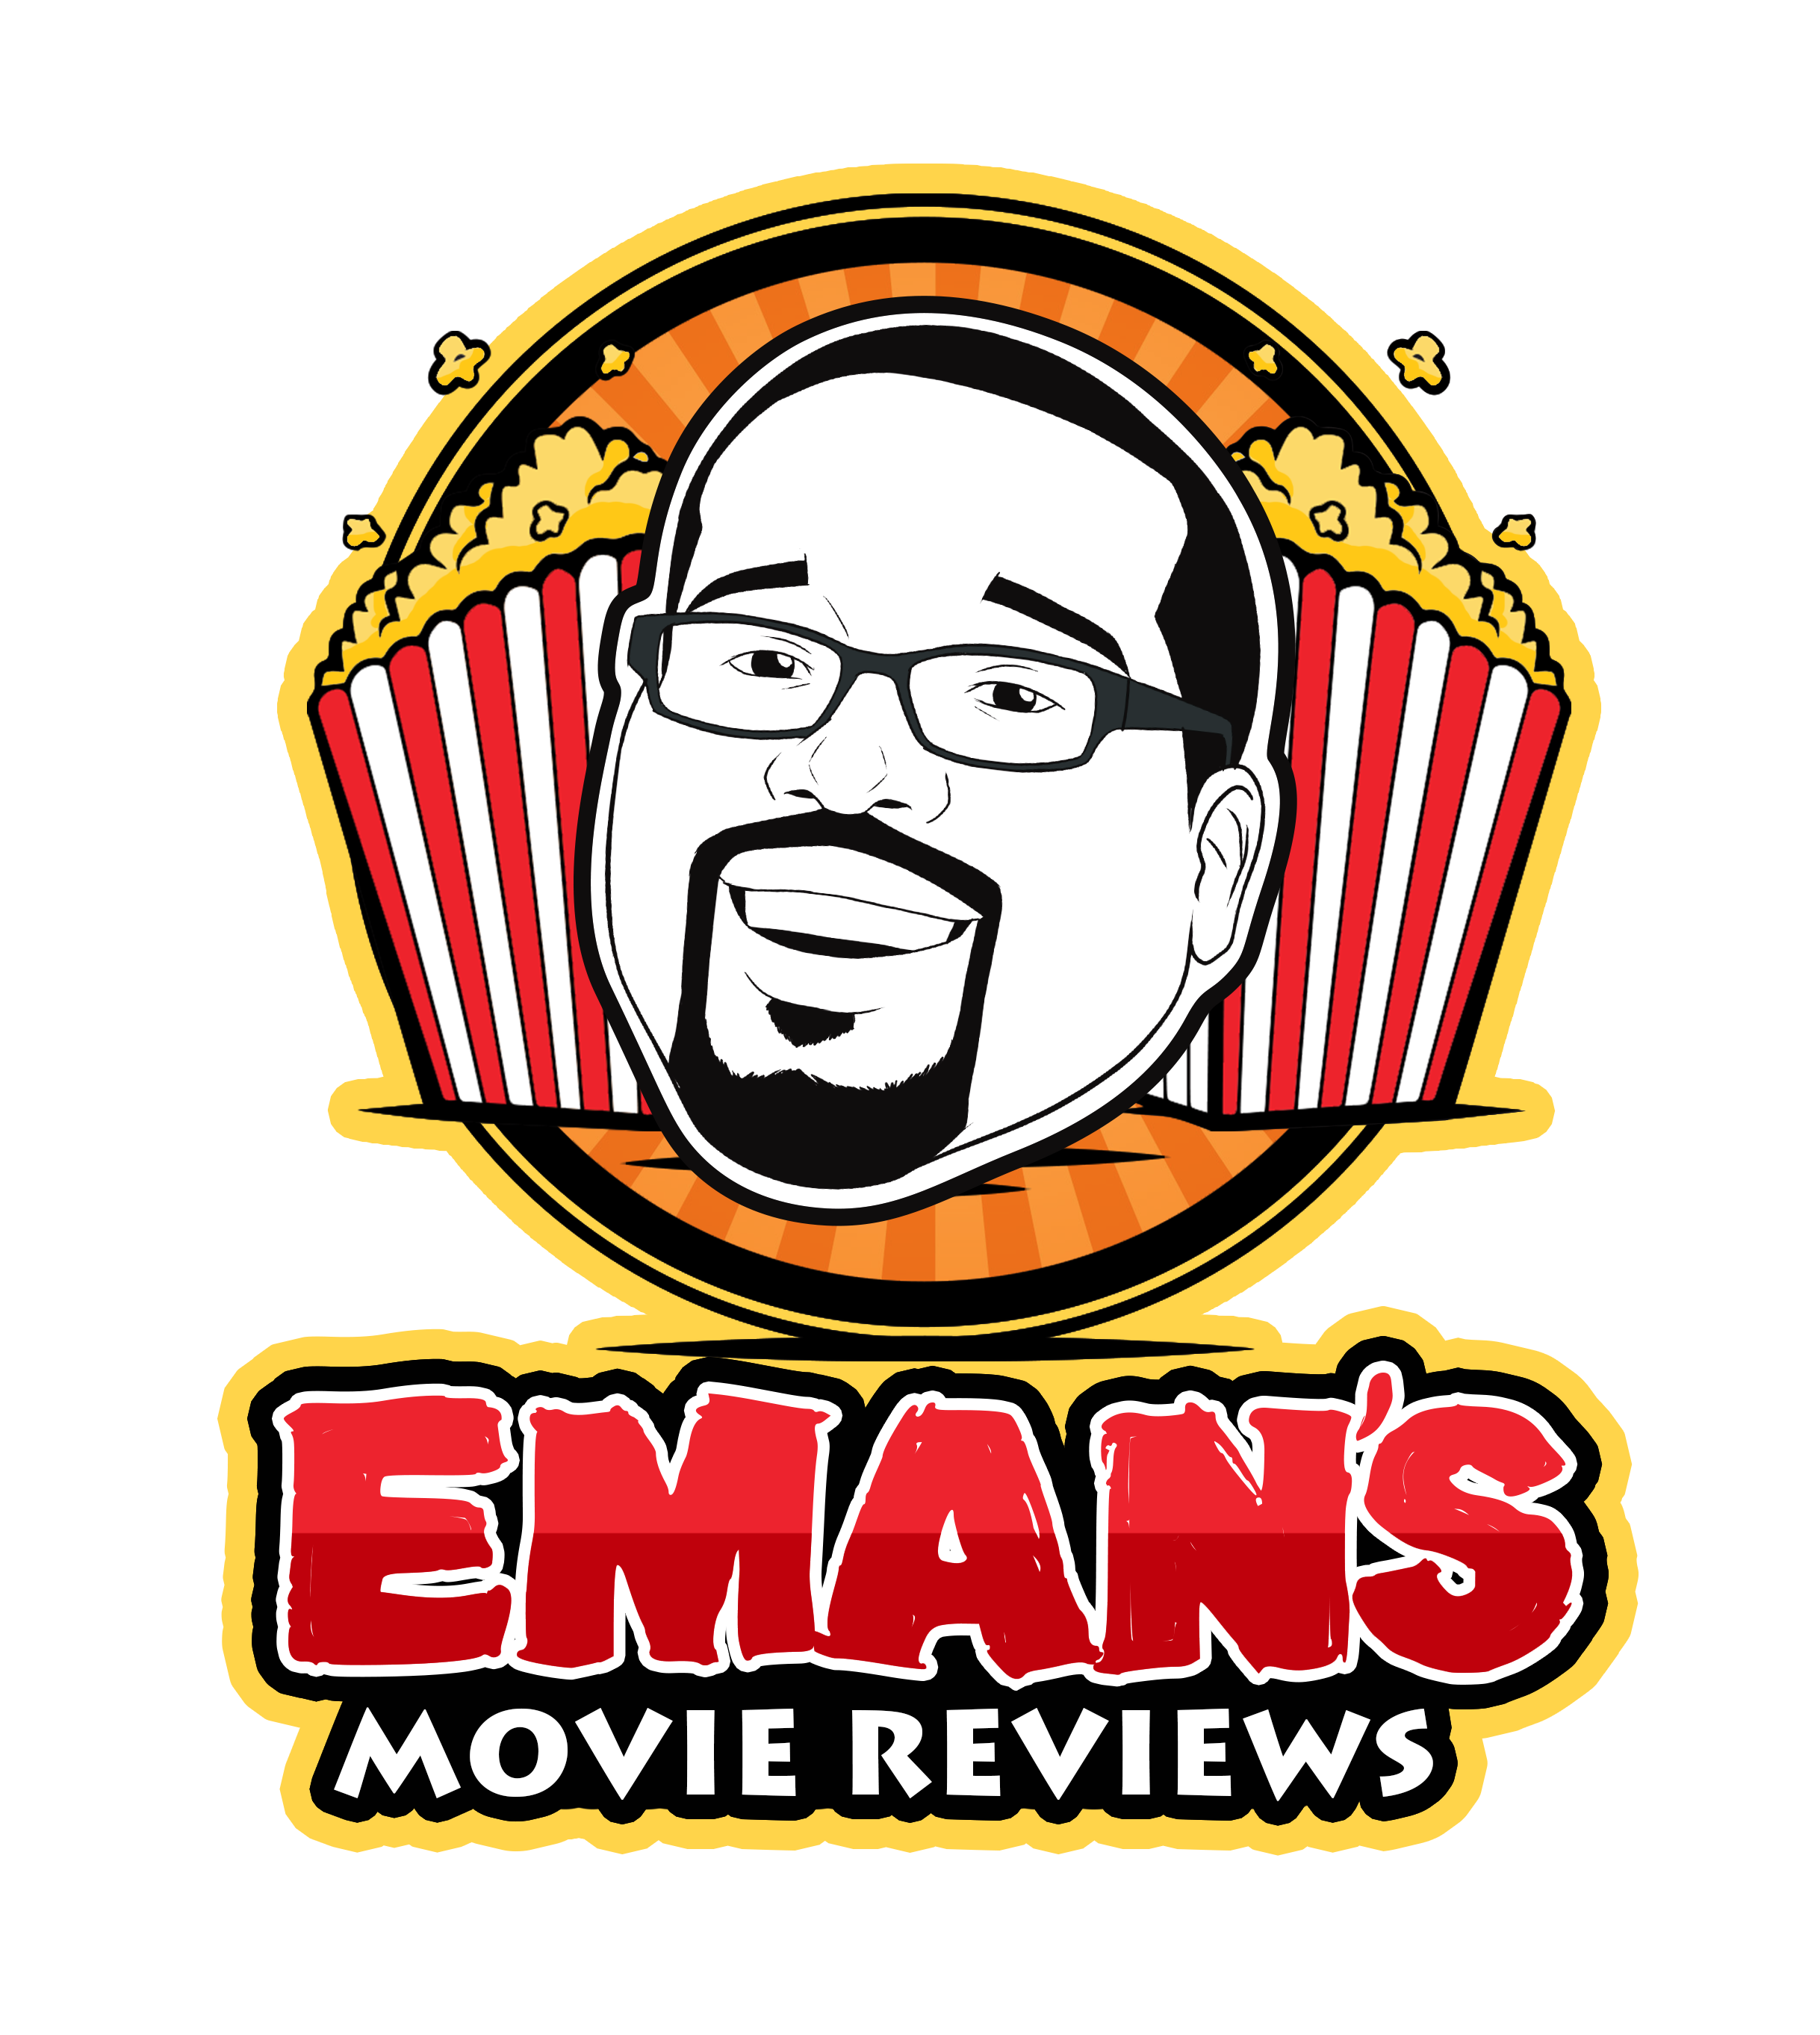 Review clipart movie review. Clip black and